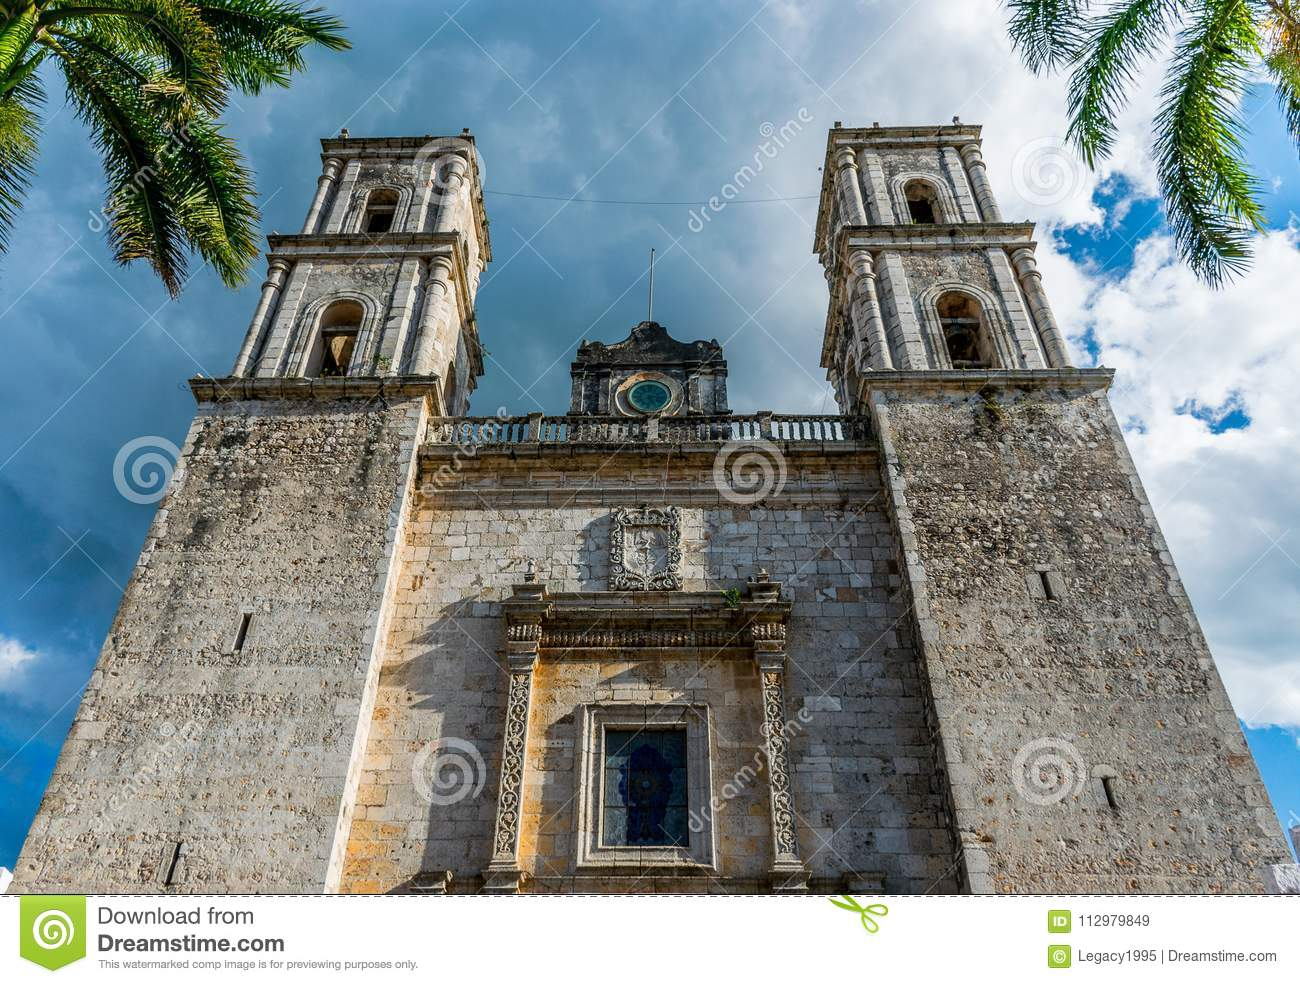 The Cathedral of San Gervasio